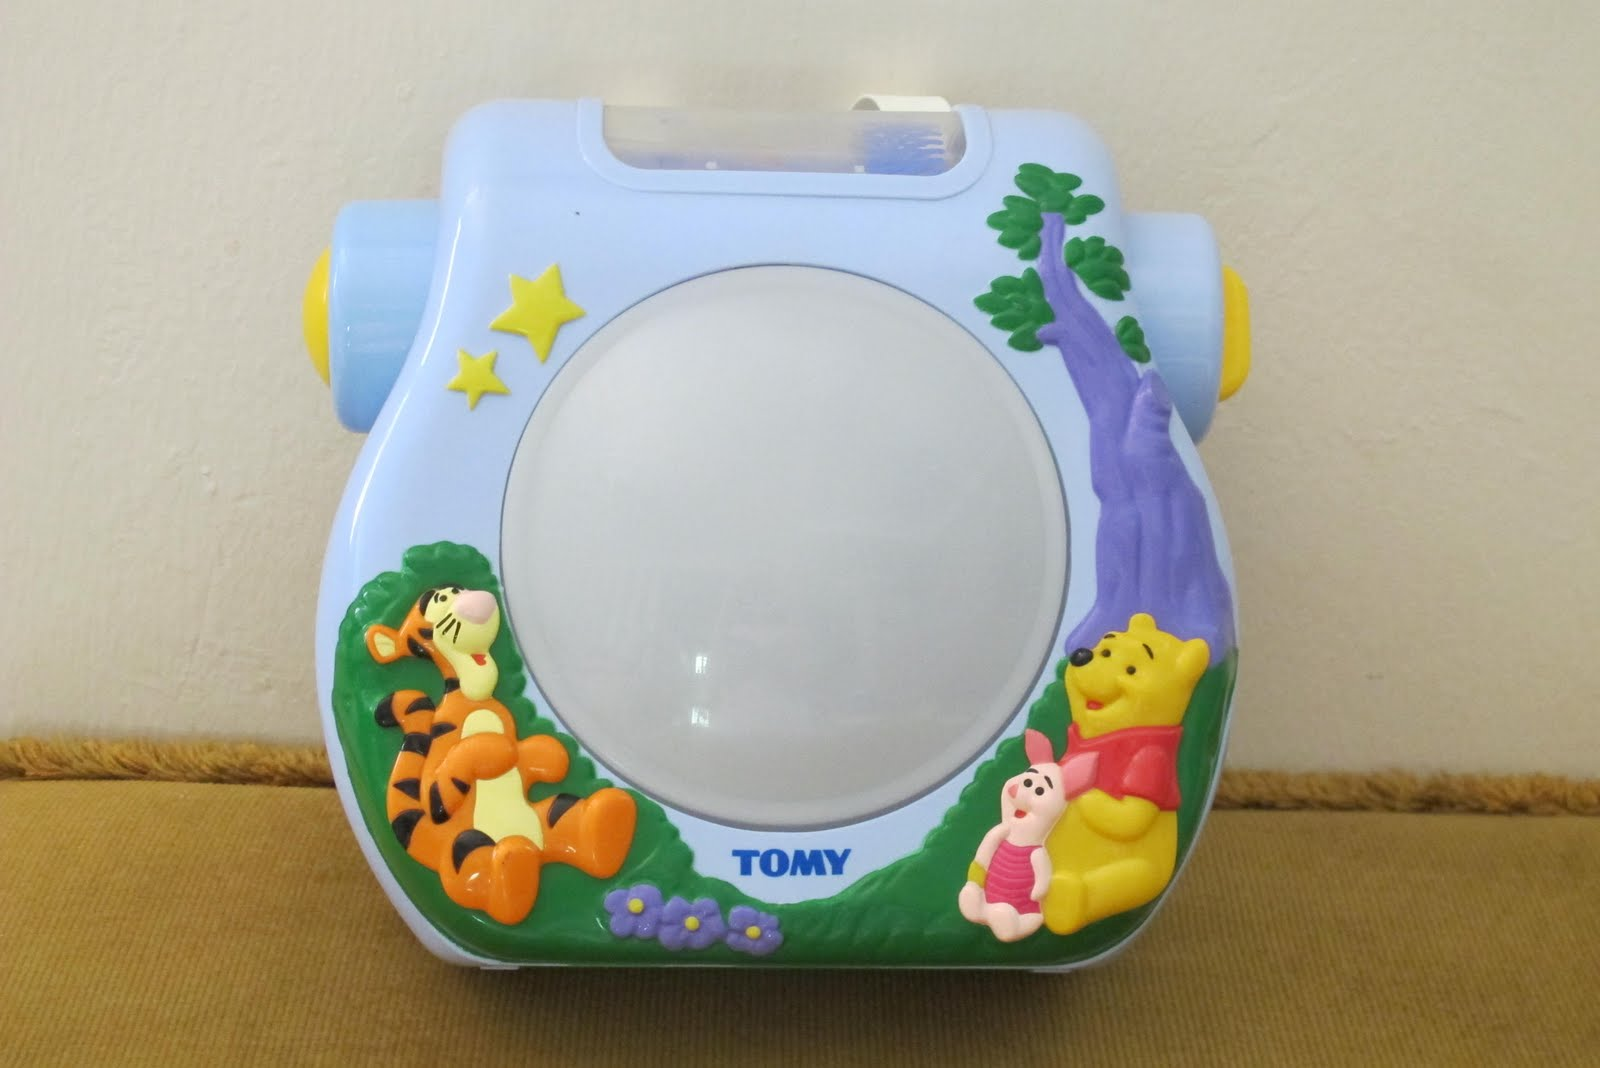 My baby world tomy winnie the pooh sweetdreams musical light show tomy winnie the pooh sweetdreams musical light show mozeypictures Image collections